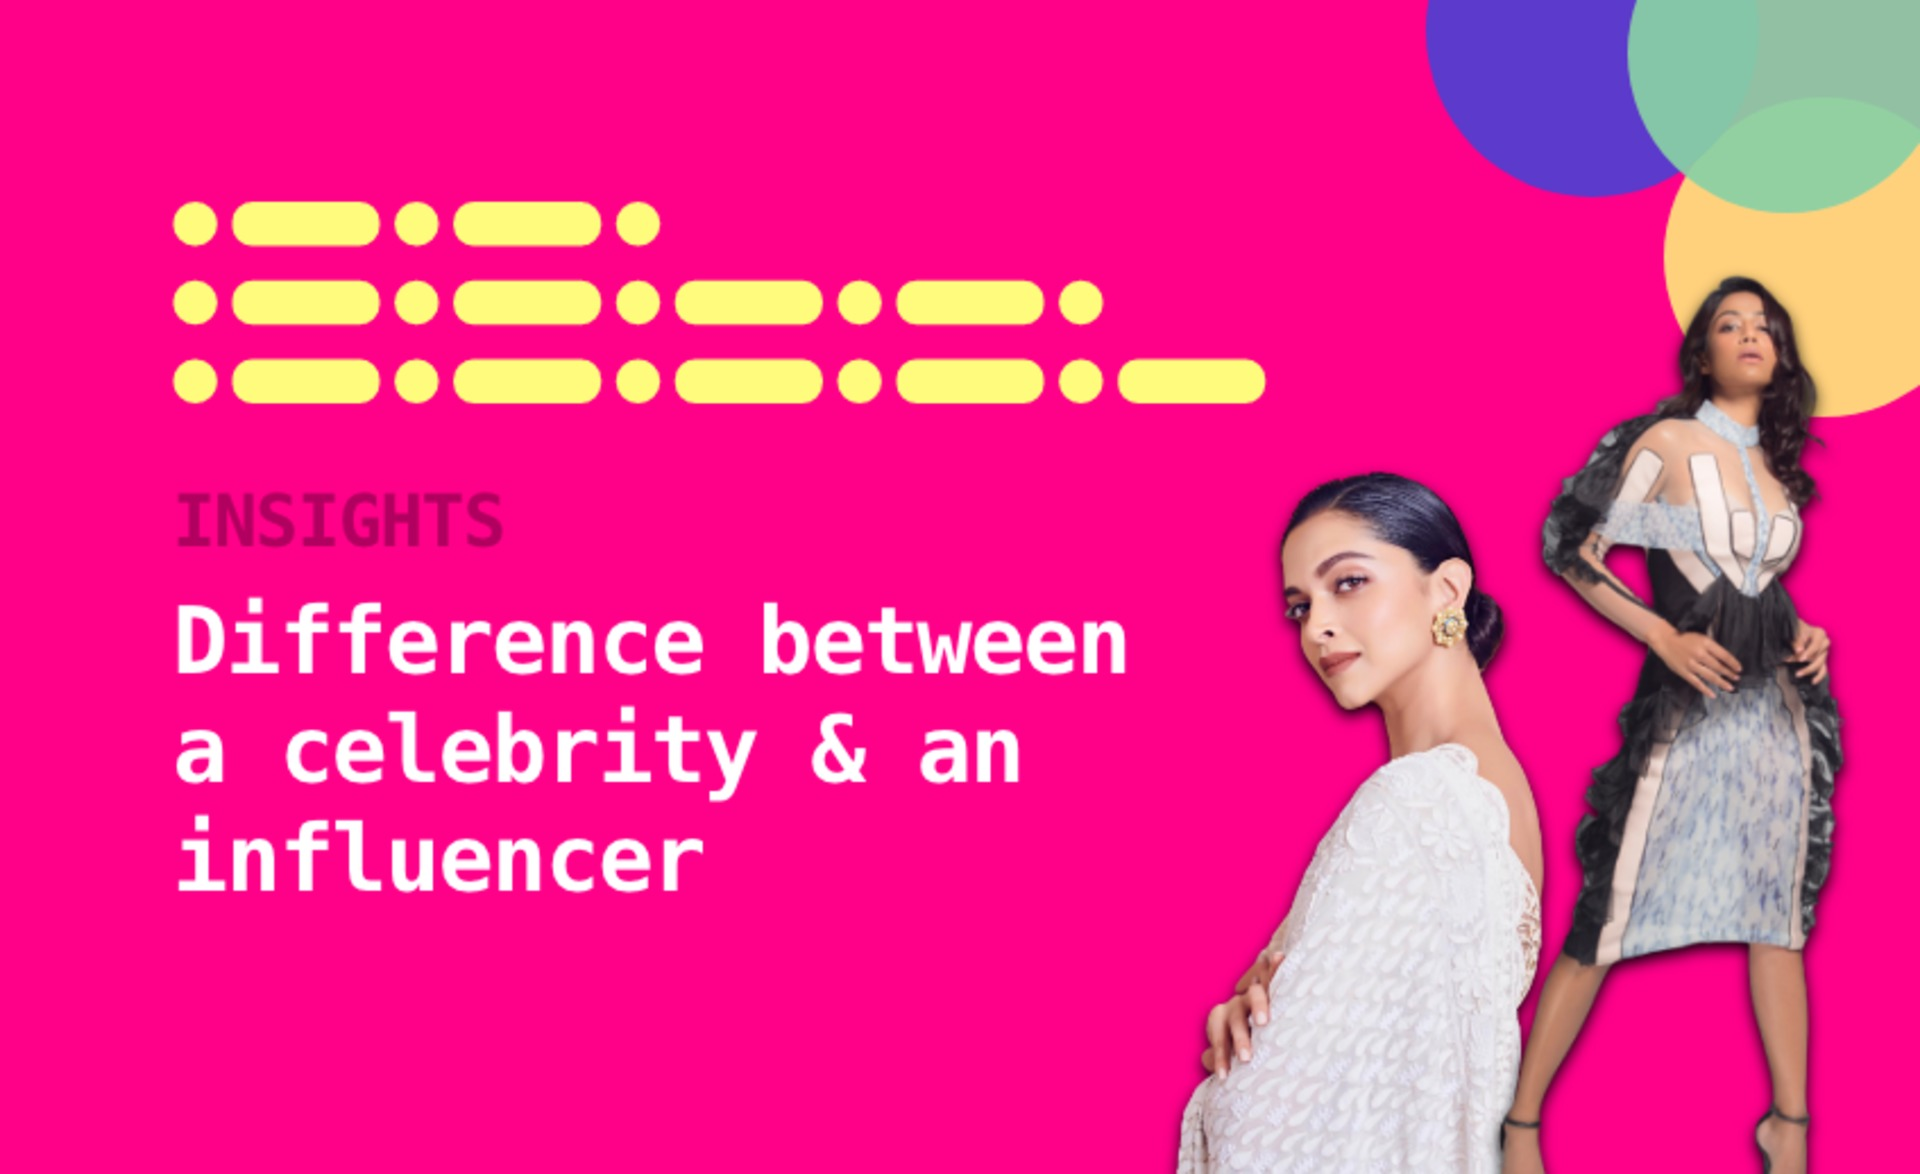 What is the real difference between a celebrity and an influencer? image